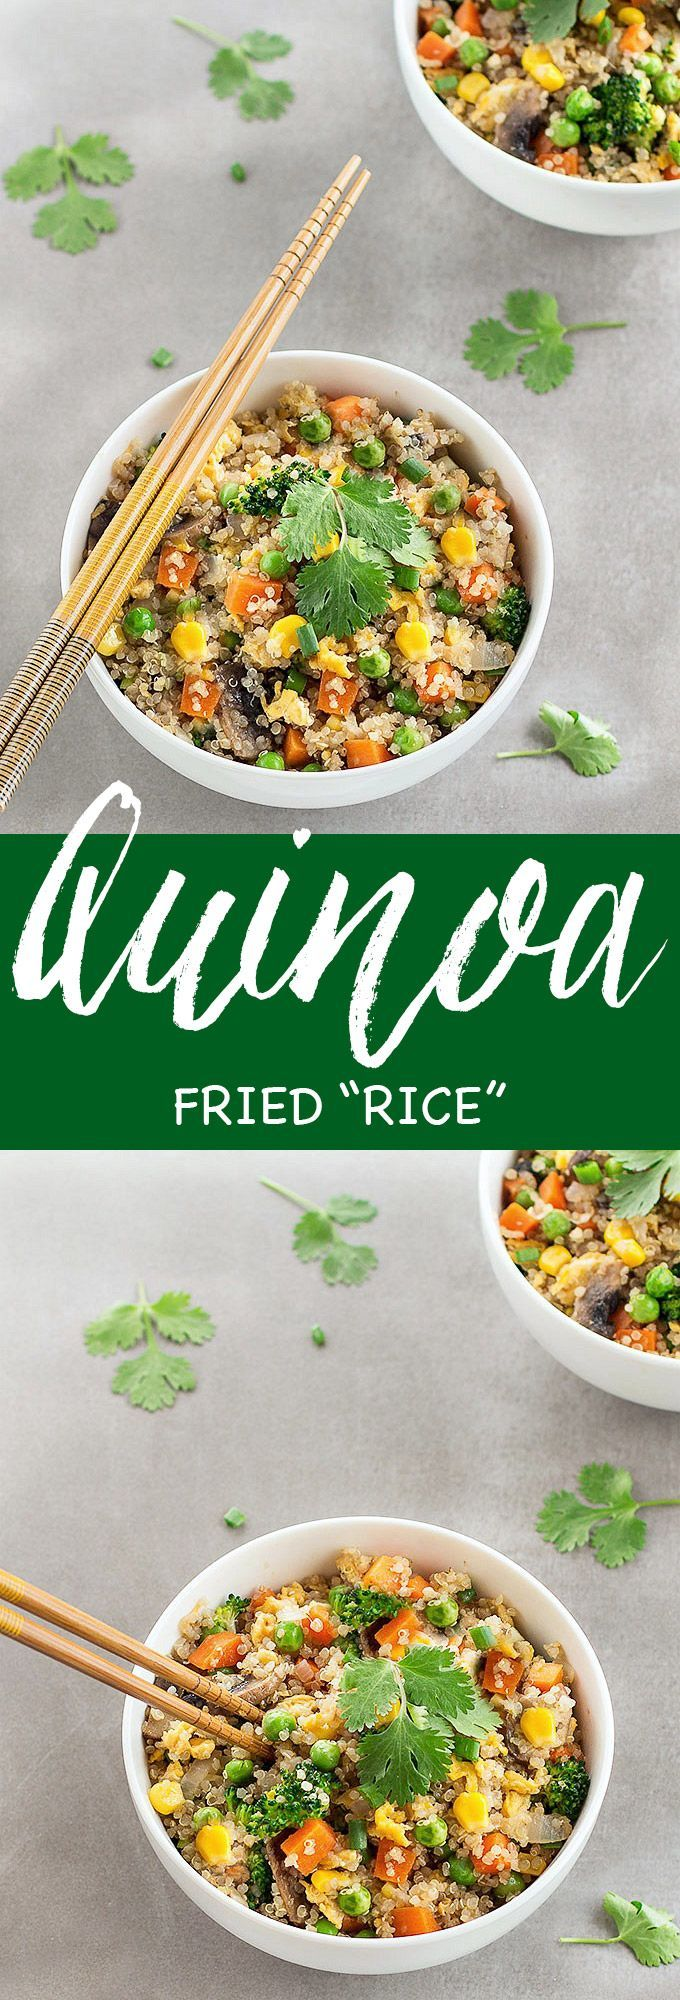 """This quinoa fried """"rice"""" is a quick, simple and healthy alternative to traditional fried rice. The recipe comes together in 30 minutes and even less if you have pre-cooked your quinoa."""